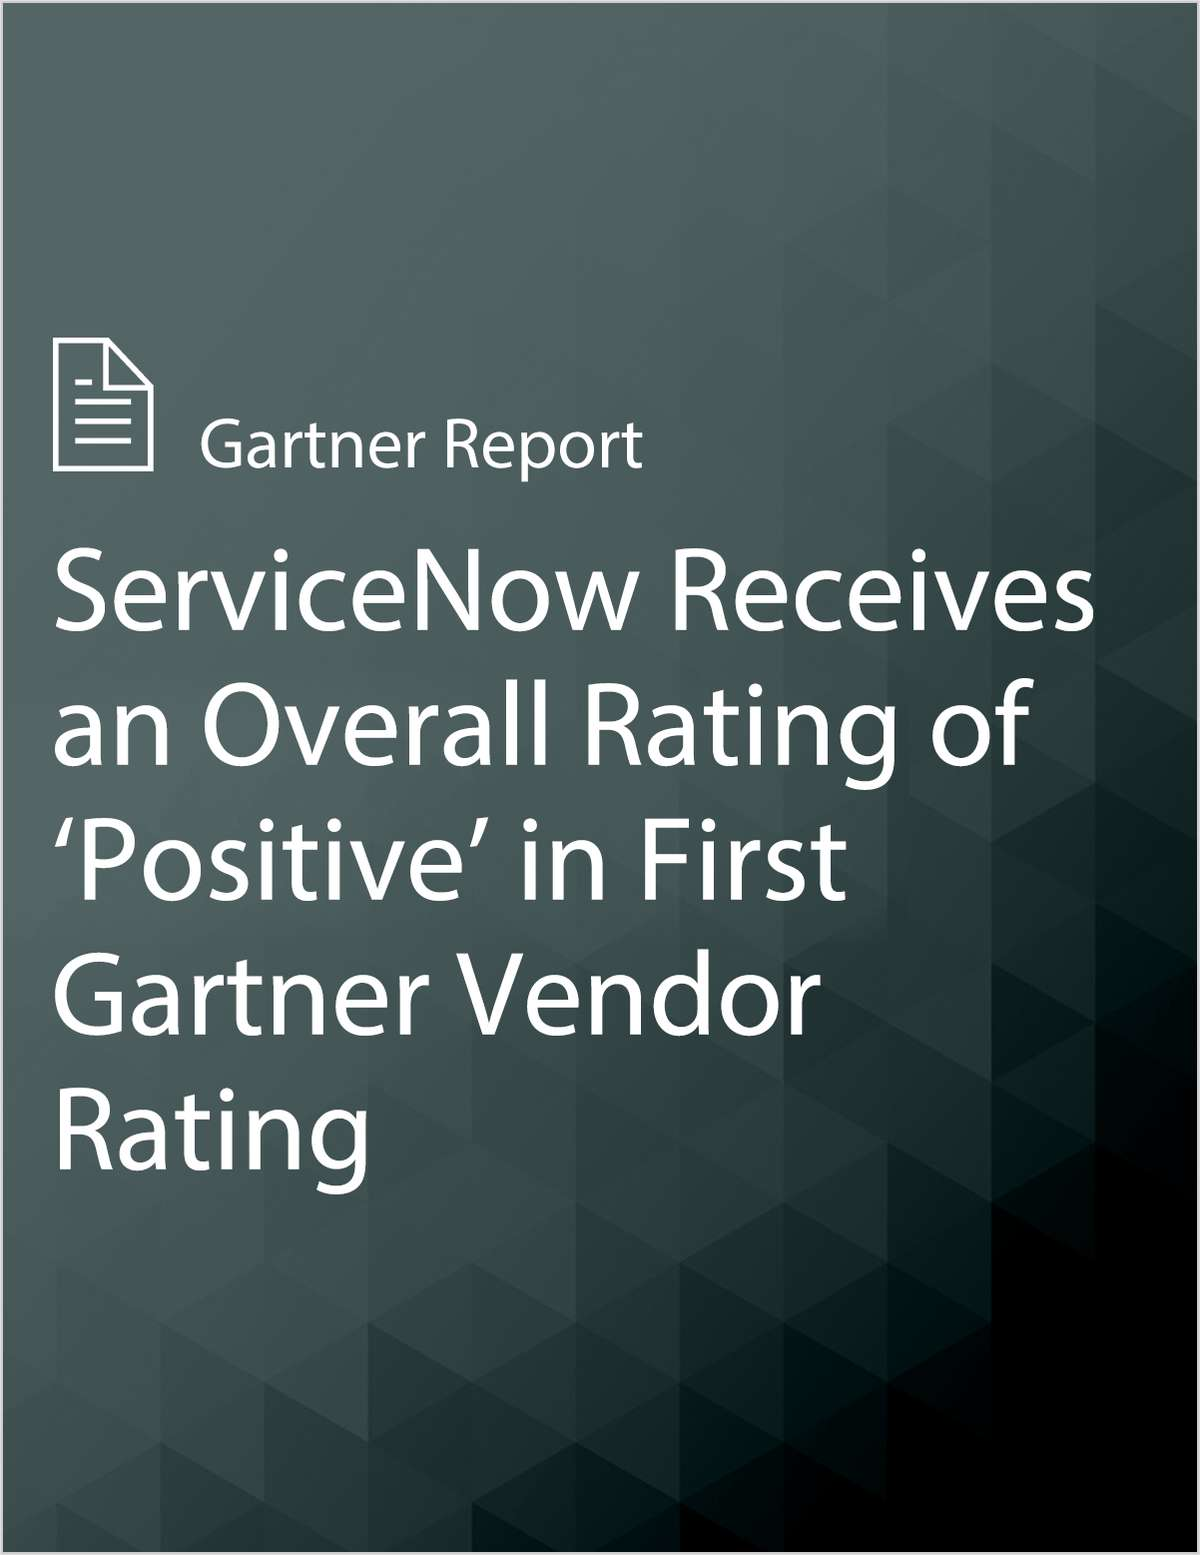 ServiceNow Receives an Overall Rating of 'Positive' in First Gartner Vendor Rating